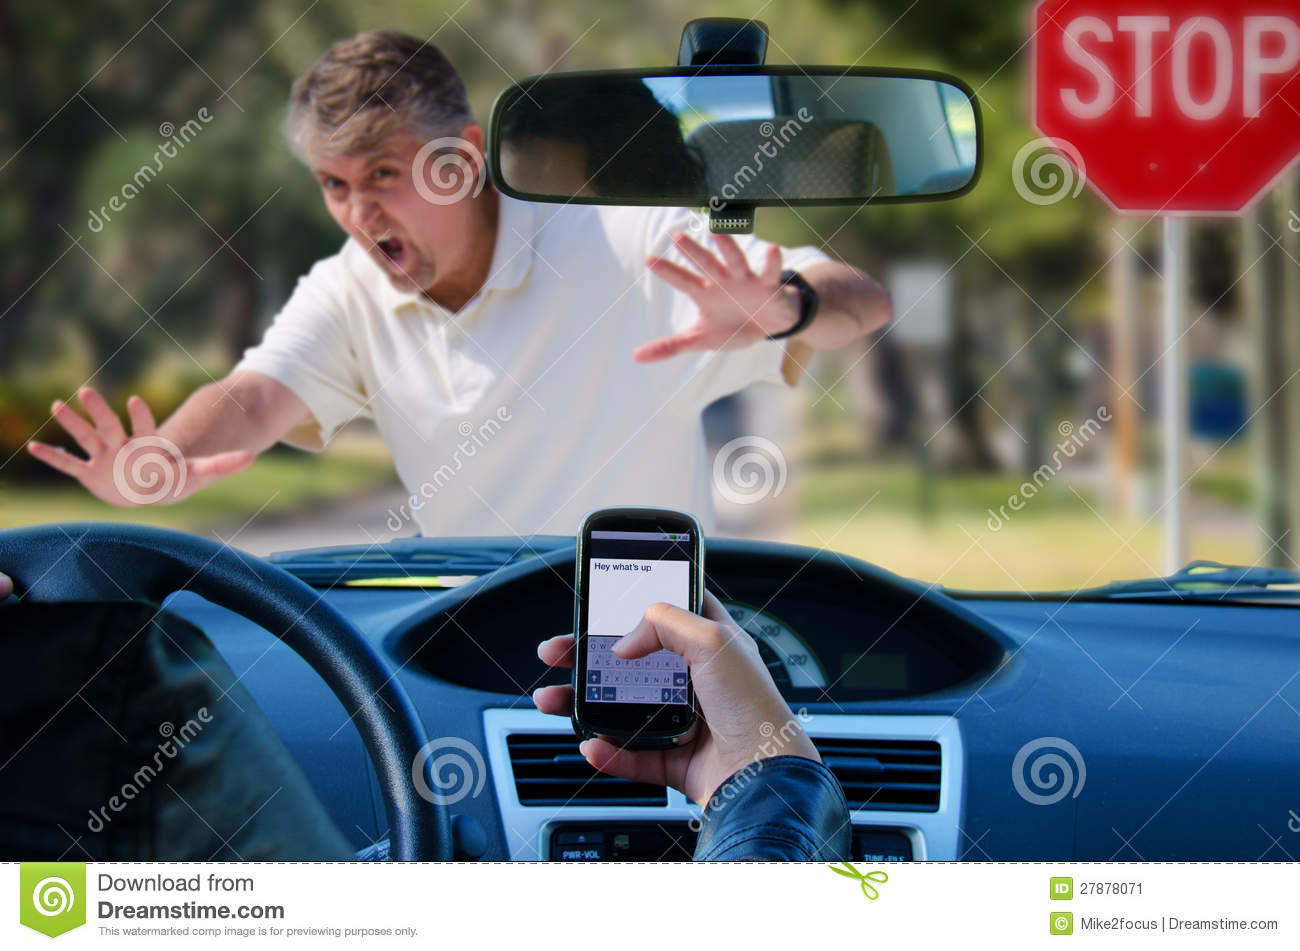 Texting and driving wreck hitting pedestrian